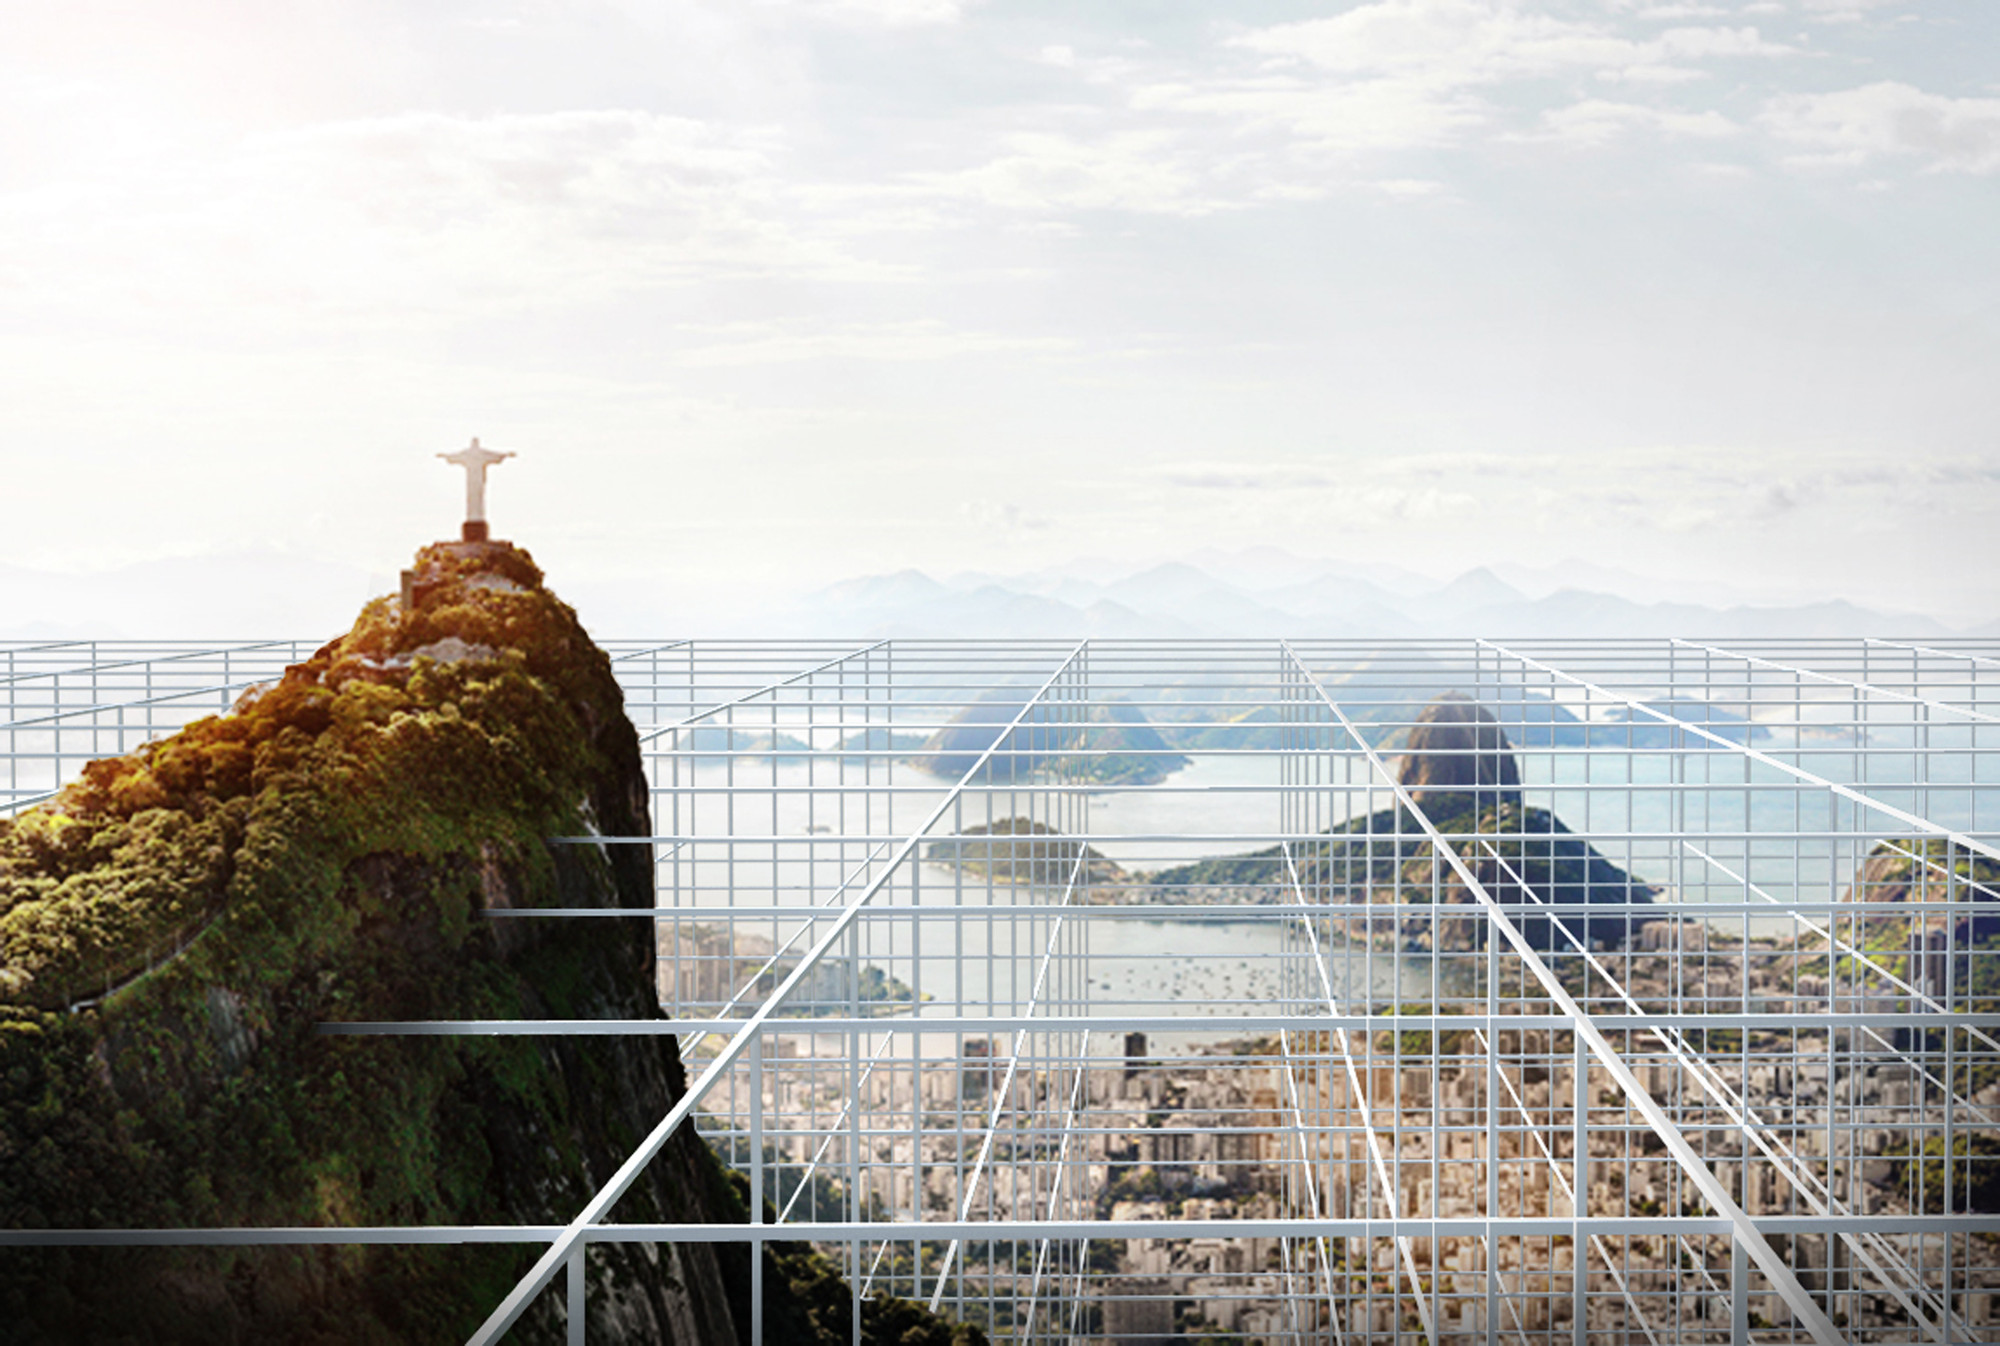 Rio de Inverso: CityVision Competition Entry / Buro AD + Spectacle, grid. Image Courtesy of Buro AD + Spectacle